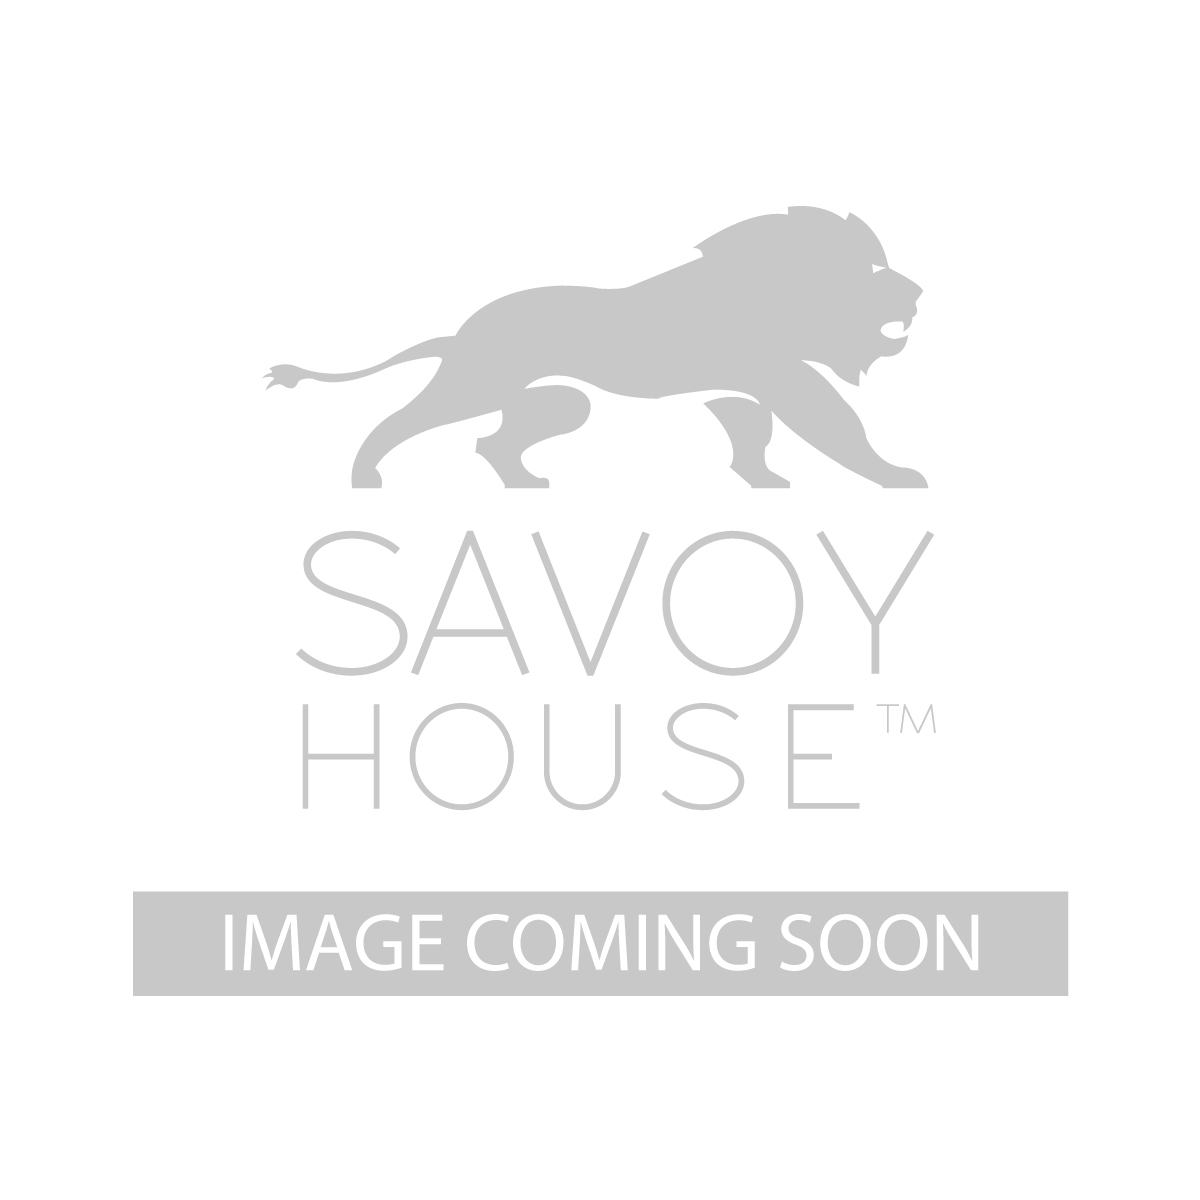 48 952 ca 13 circulaire discus 3 headed ceiling fan by savoy house circulaire 3 headed ceiling fan aloadofball Gallery